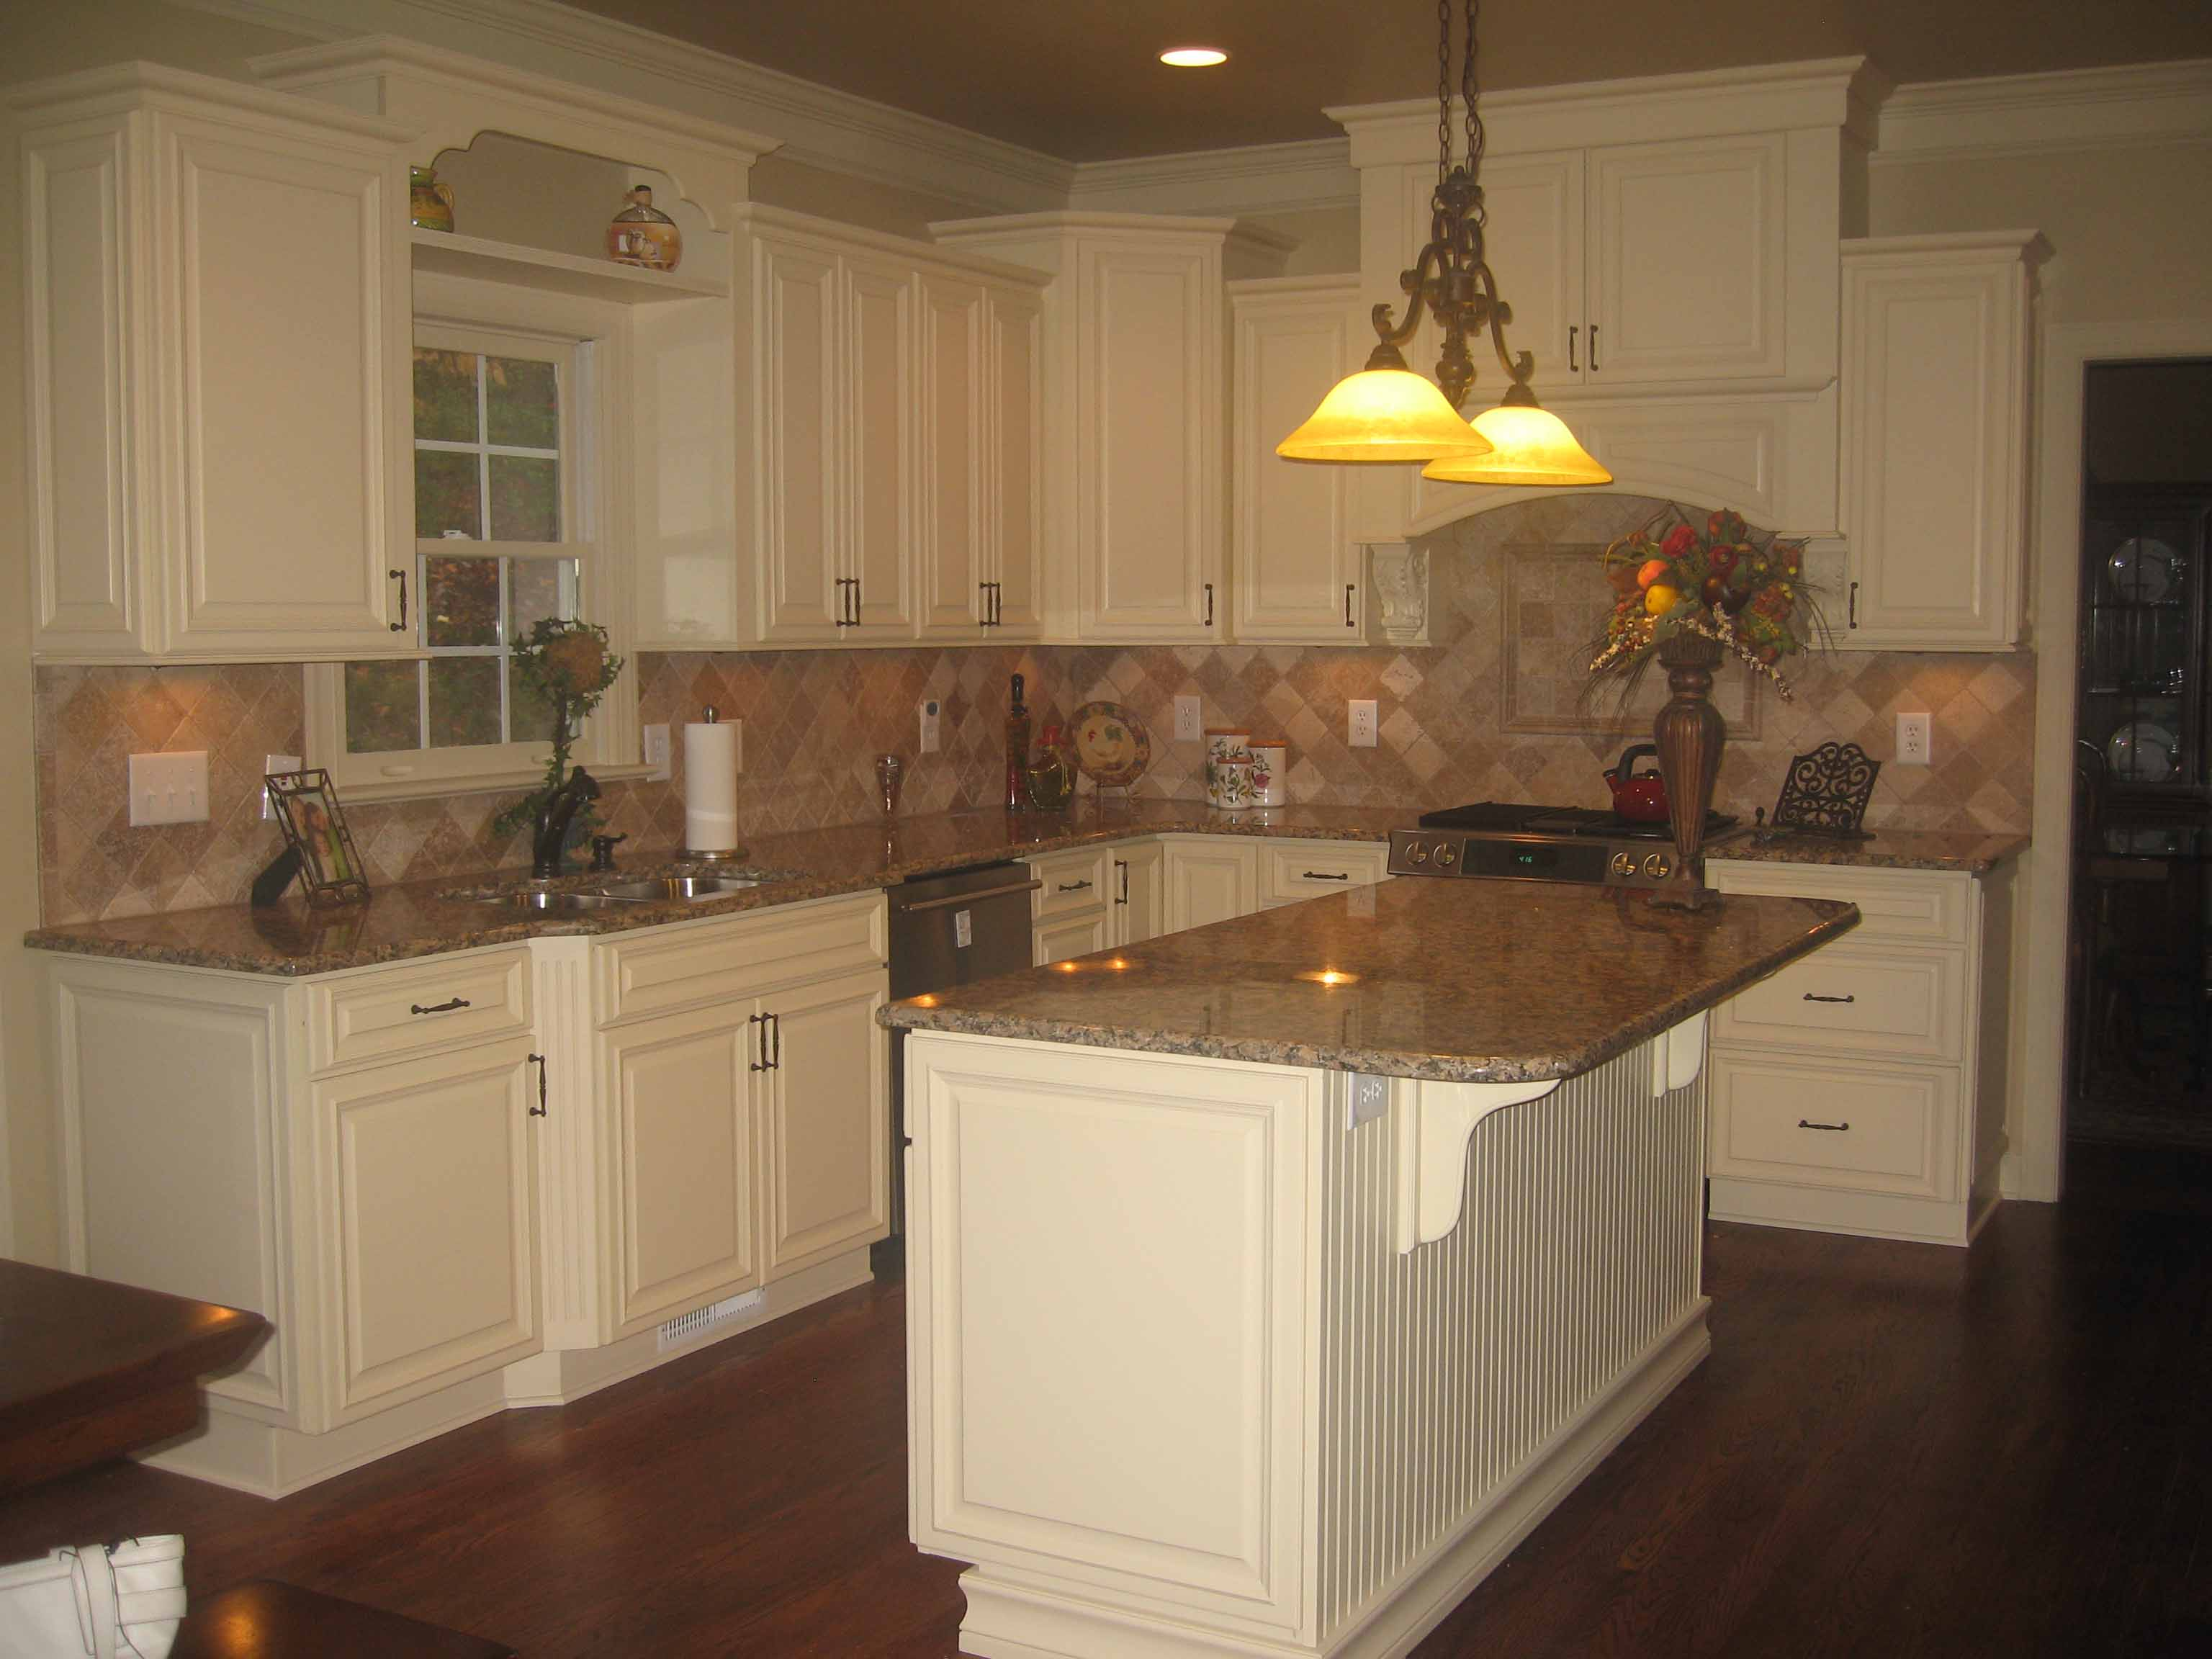 design italian best ideas kitchen cabinet inventiveness top mean cabinets rustic buy furniture